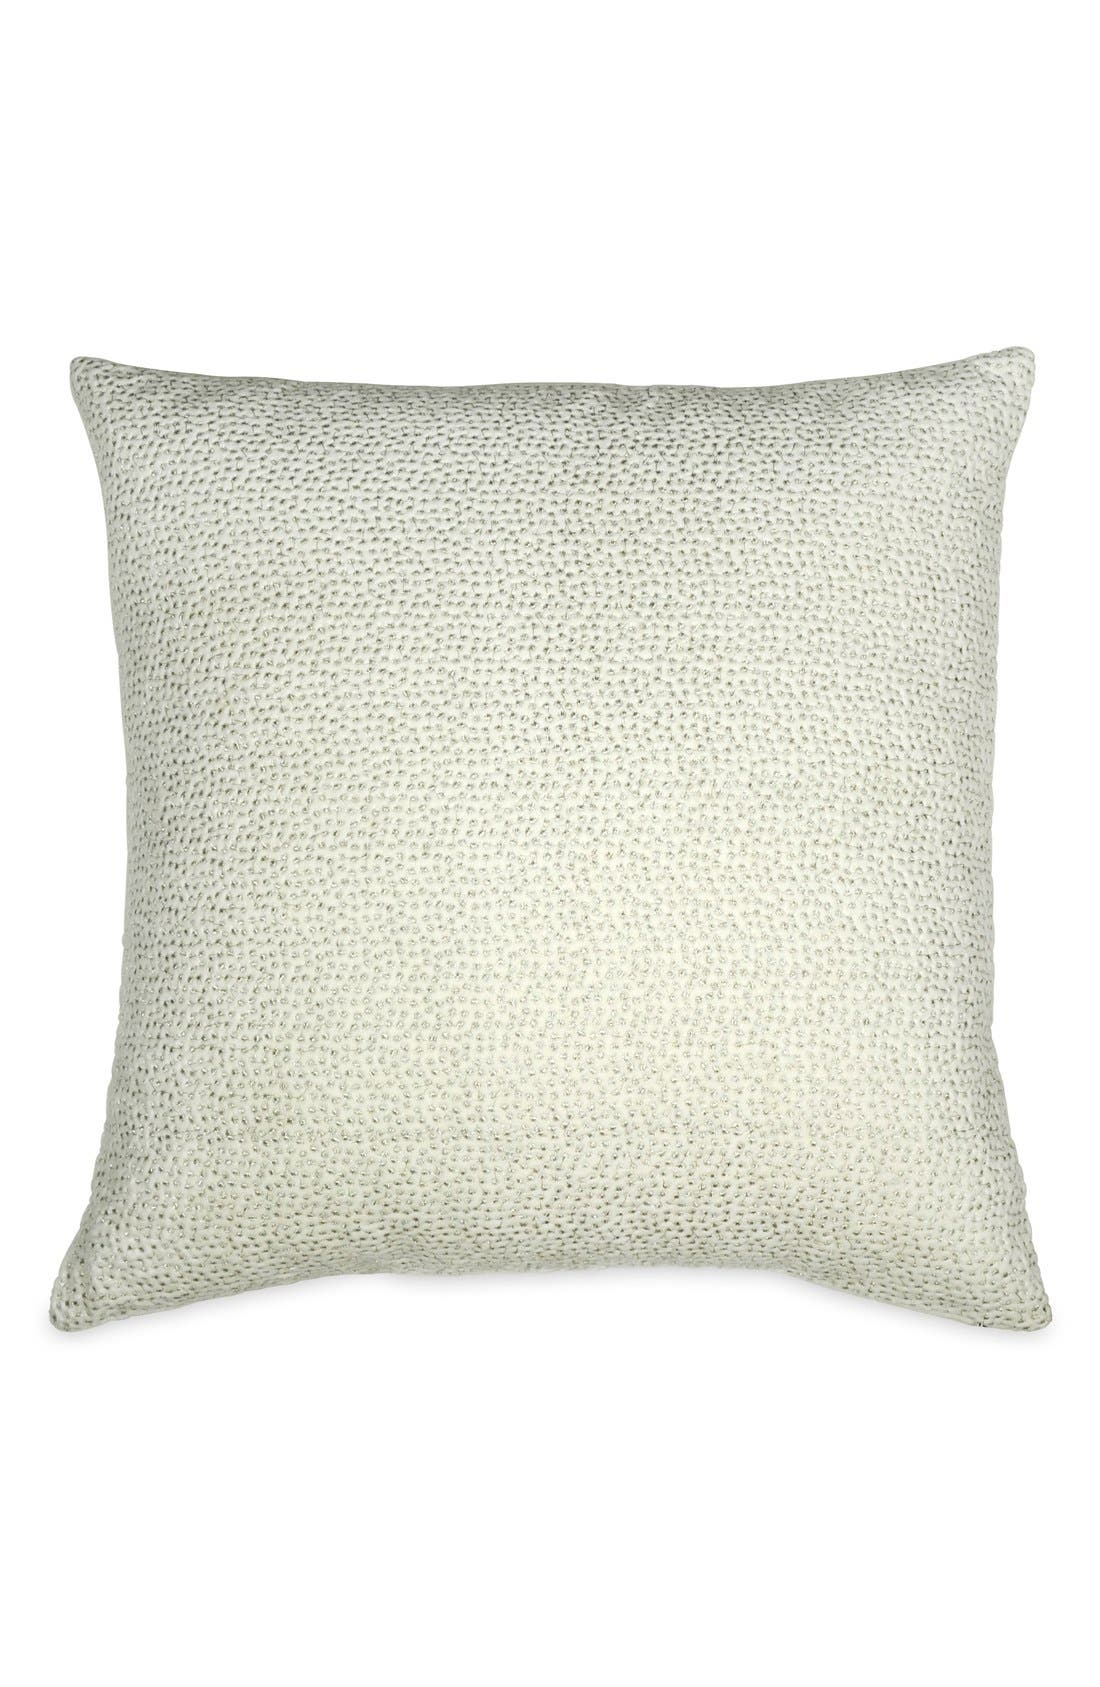 Donna Karan Collection 'Exhale' Pillow,                         Main,                         color, Ivory